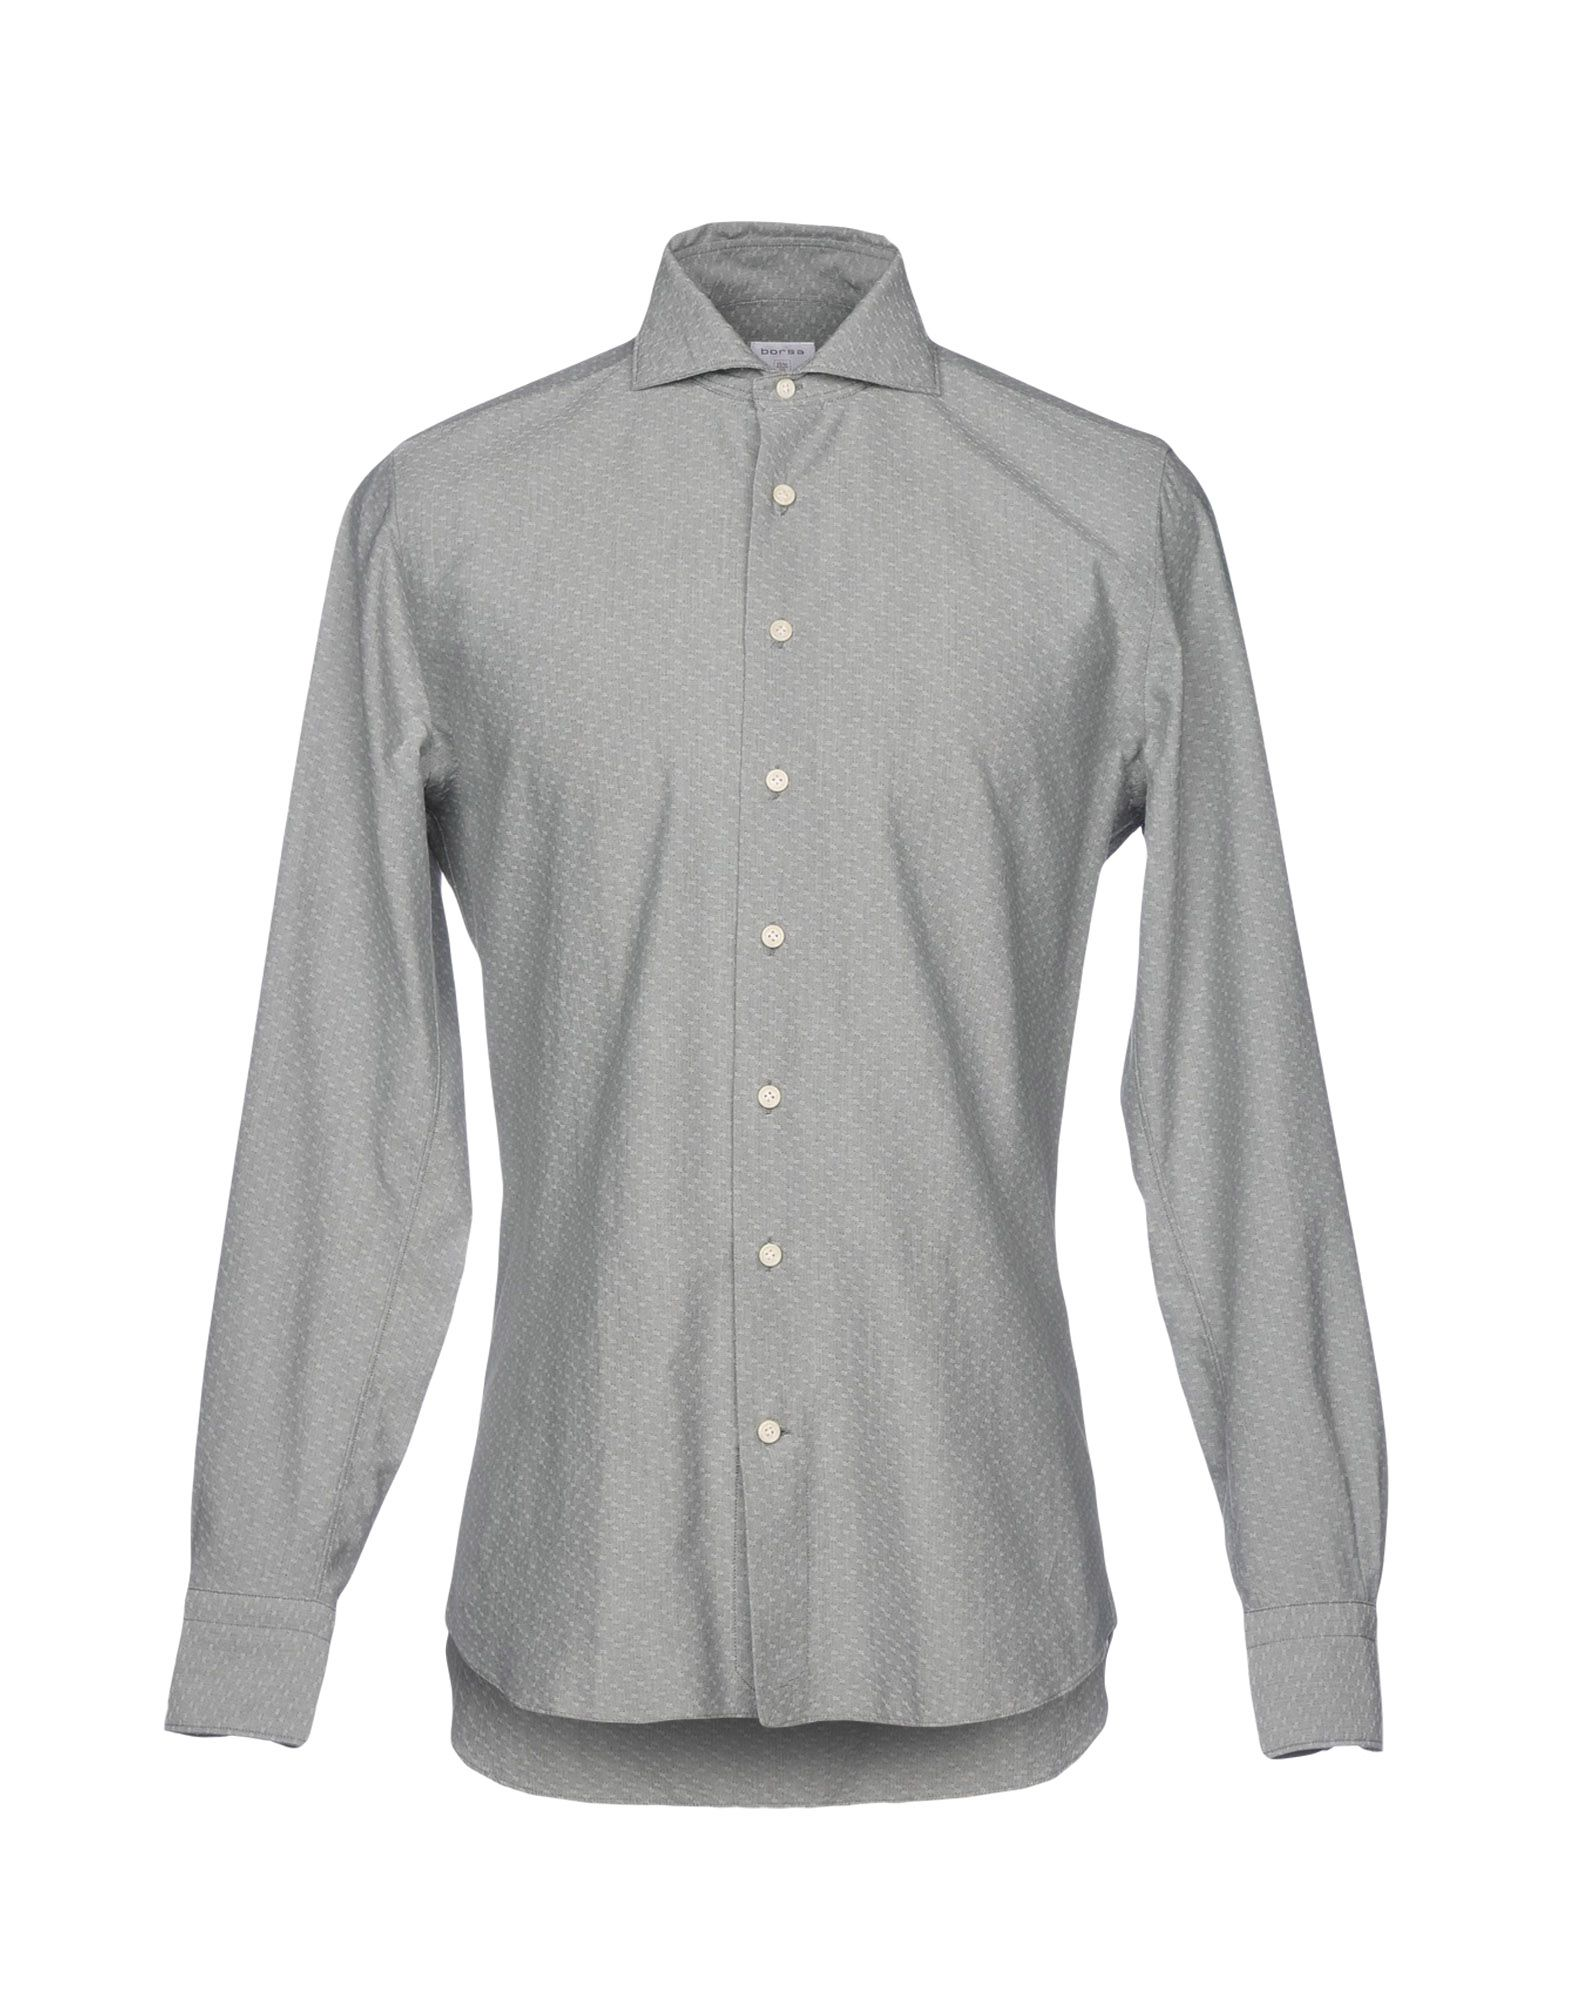 BORSA Solid Color Shirt in Light Grey